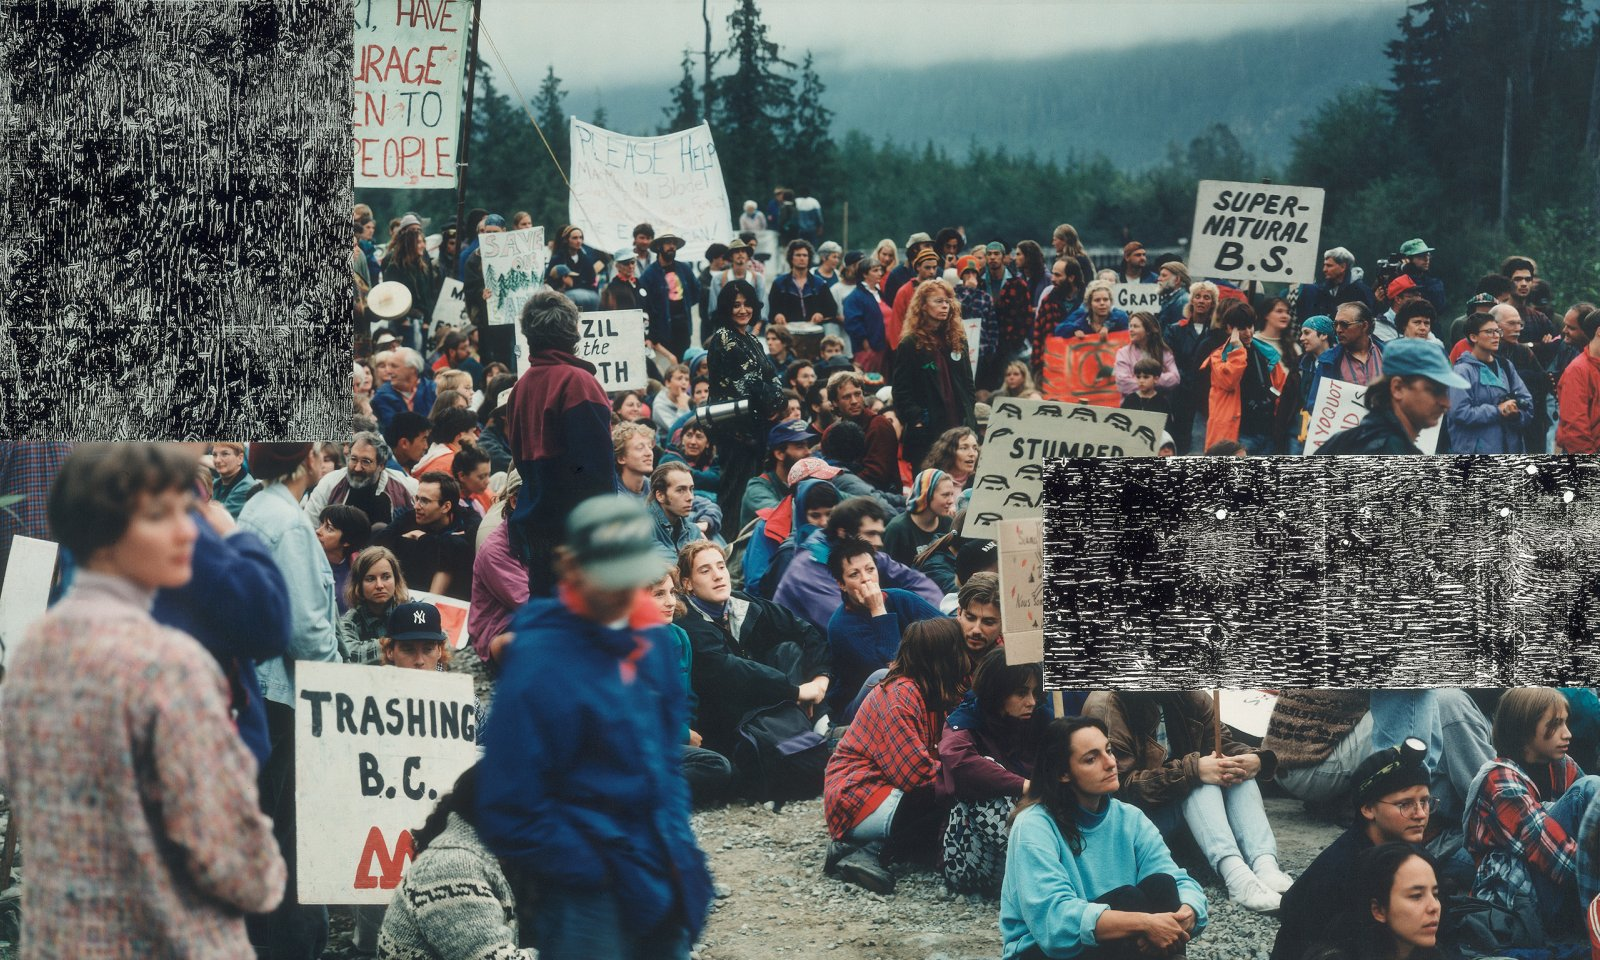 Ian Wallace, Clayoquot Protest (August 9, 1993) II, 1993–1995, photolaminate with acrylic on canvas, 48 x 60 x 1 in. (122 x 152 x 3 cm) by Ian Wallace